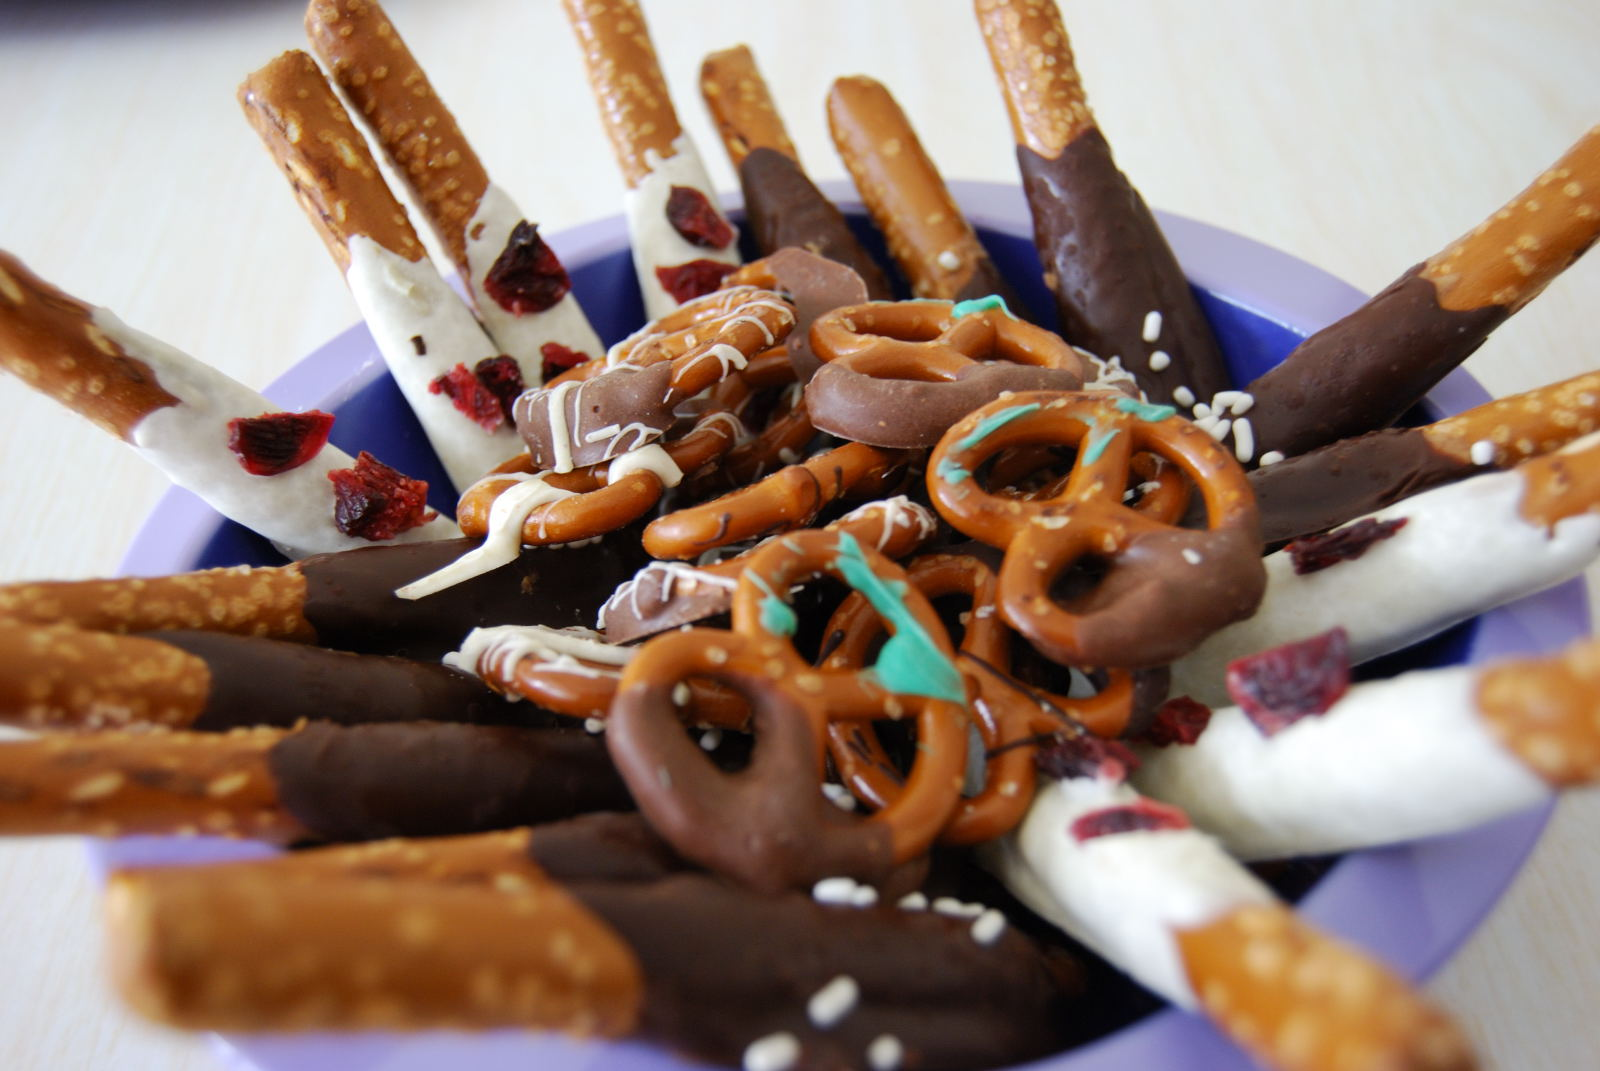 How to Make Chocolate Covered Pretzels | Garden Guides